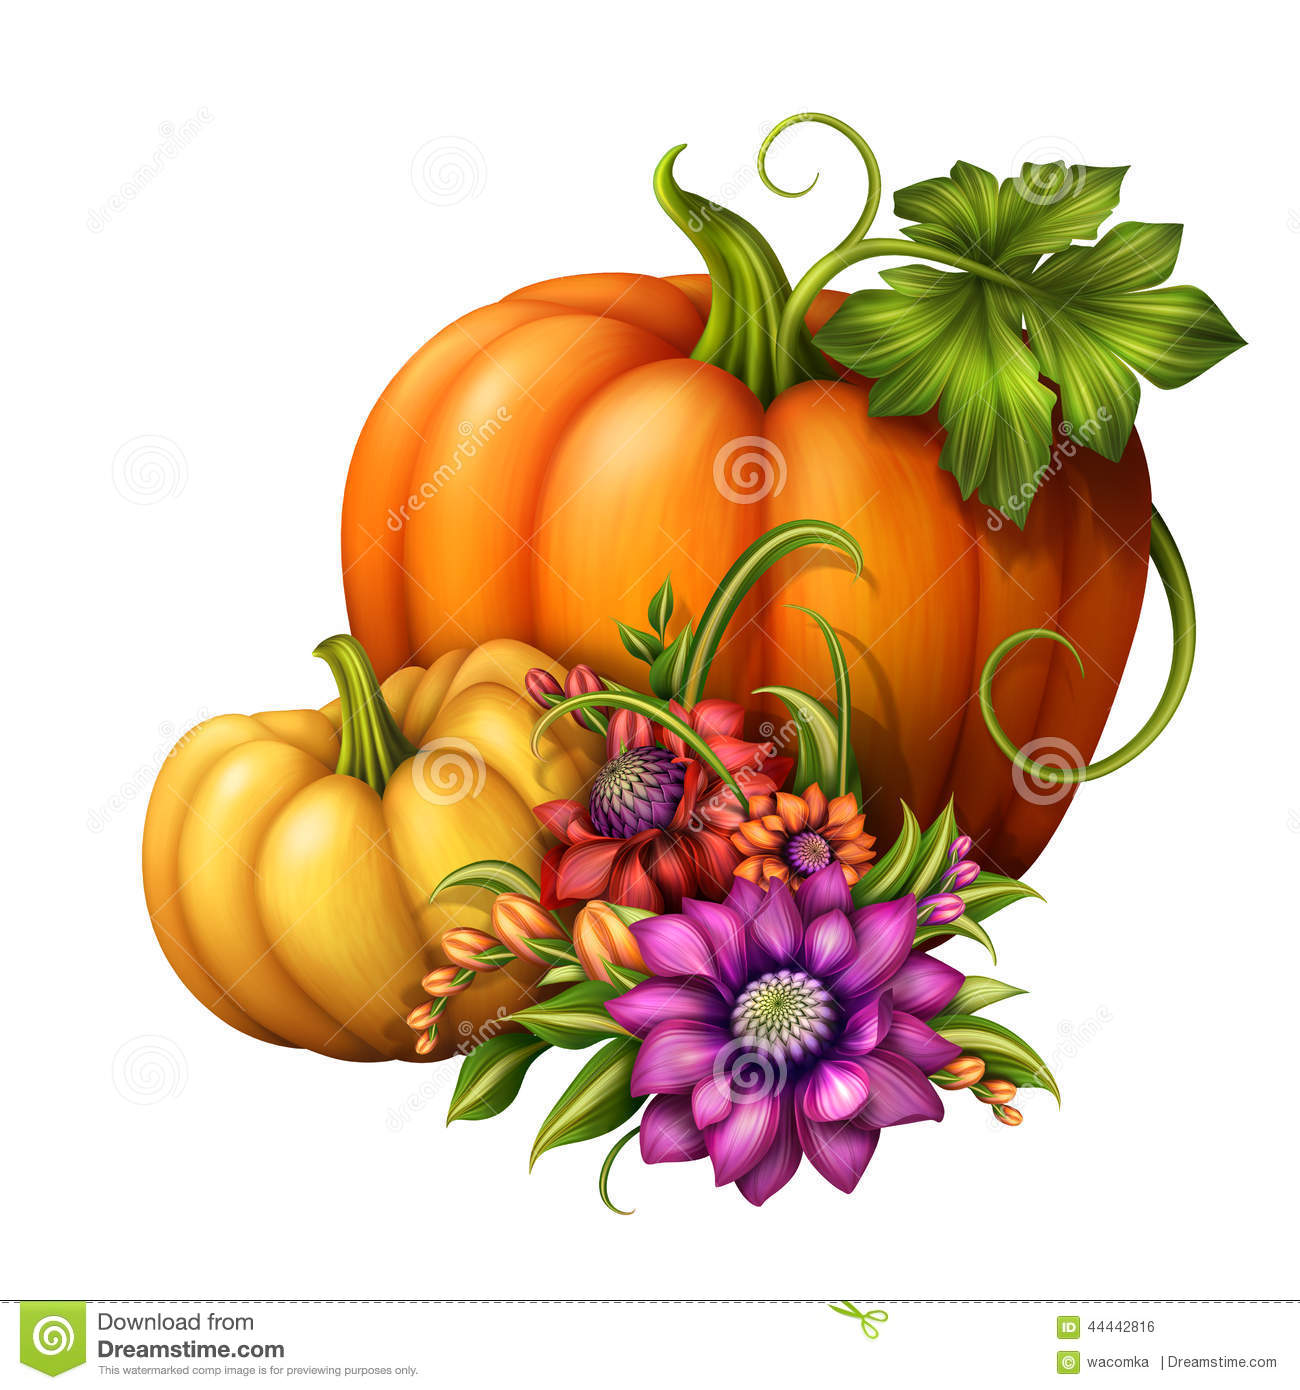 Fall flower bouquet clipart.